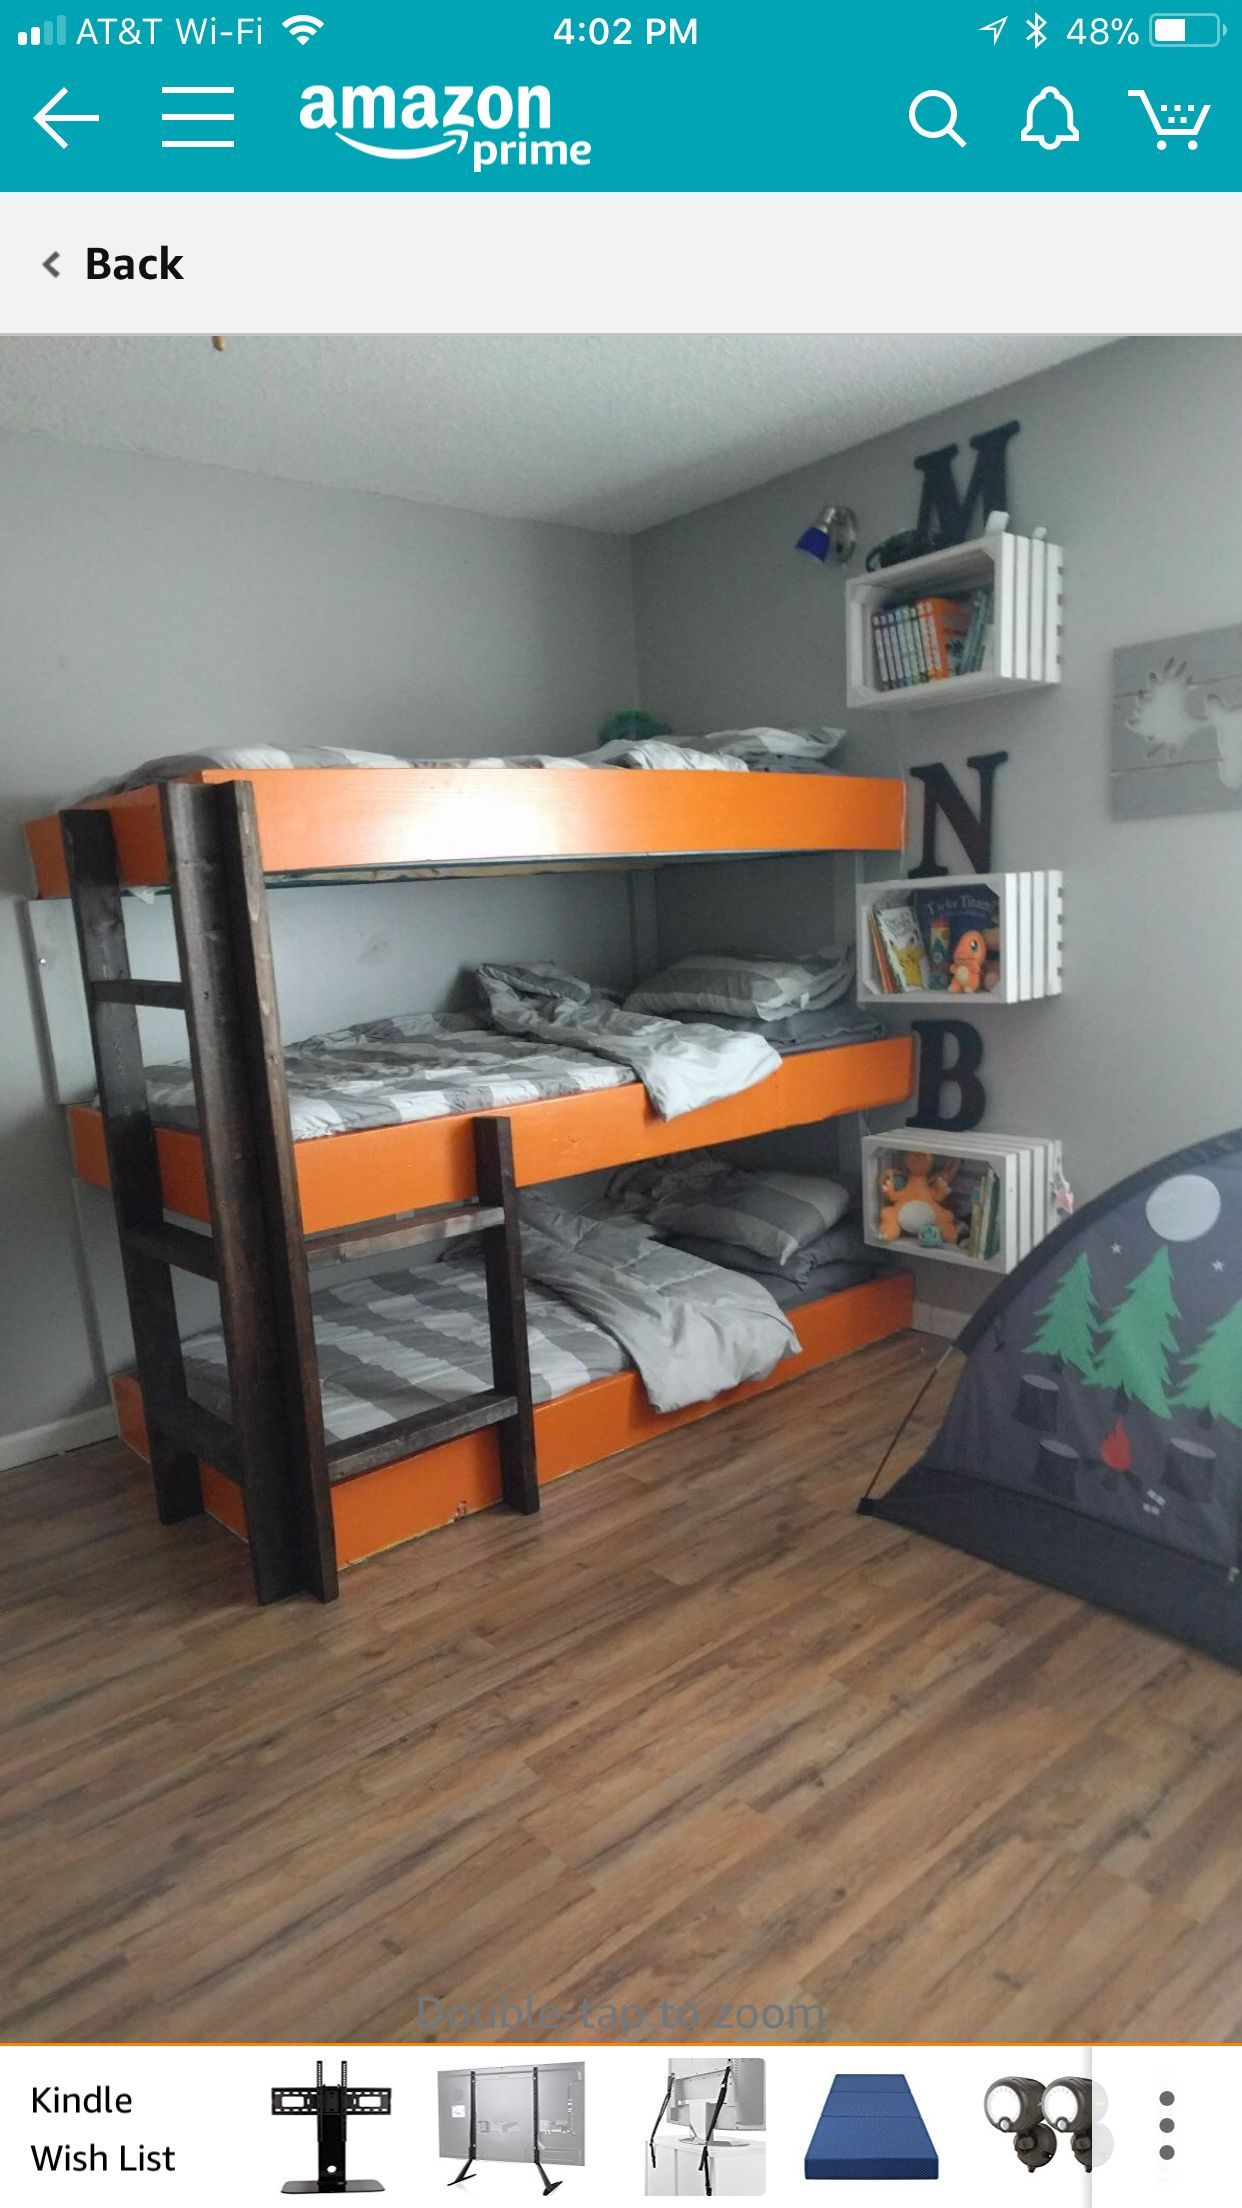 Triple Bunk Beds With Crate Nightstands Attached To The Wall Small